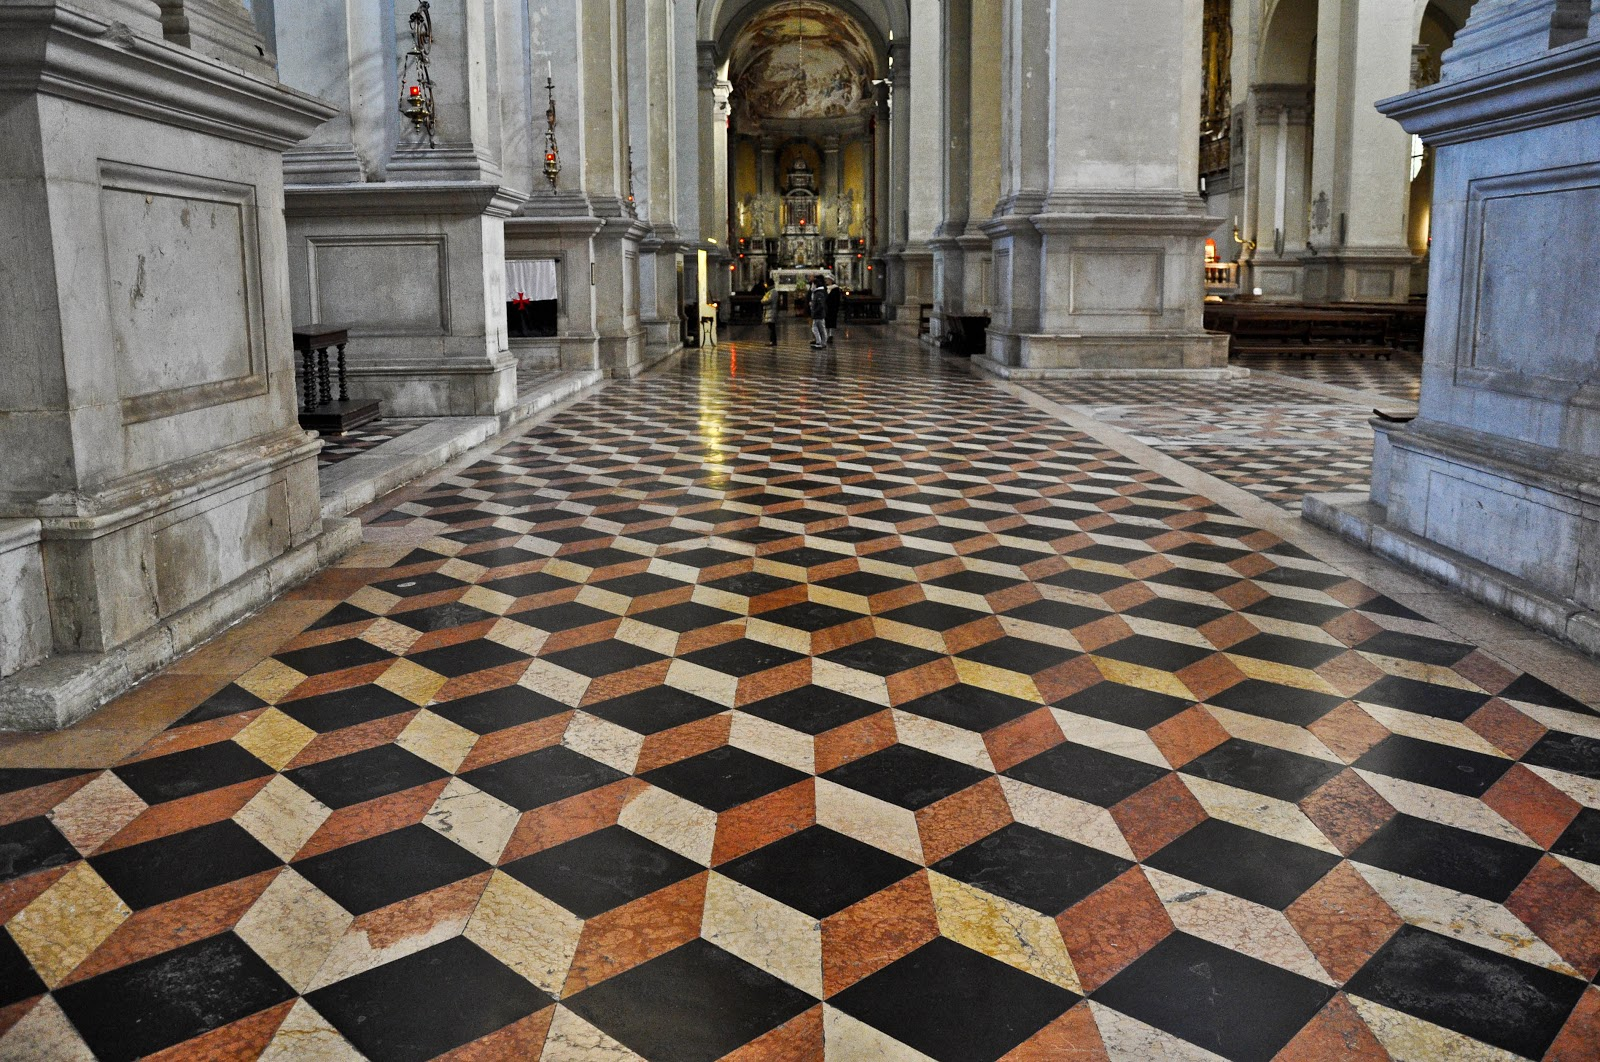 The geometric pattern on the floor of the Basilica of Santa Giustiniana in Padua, Italy